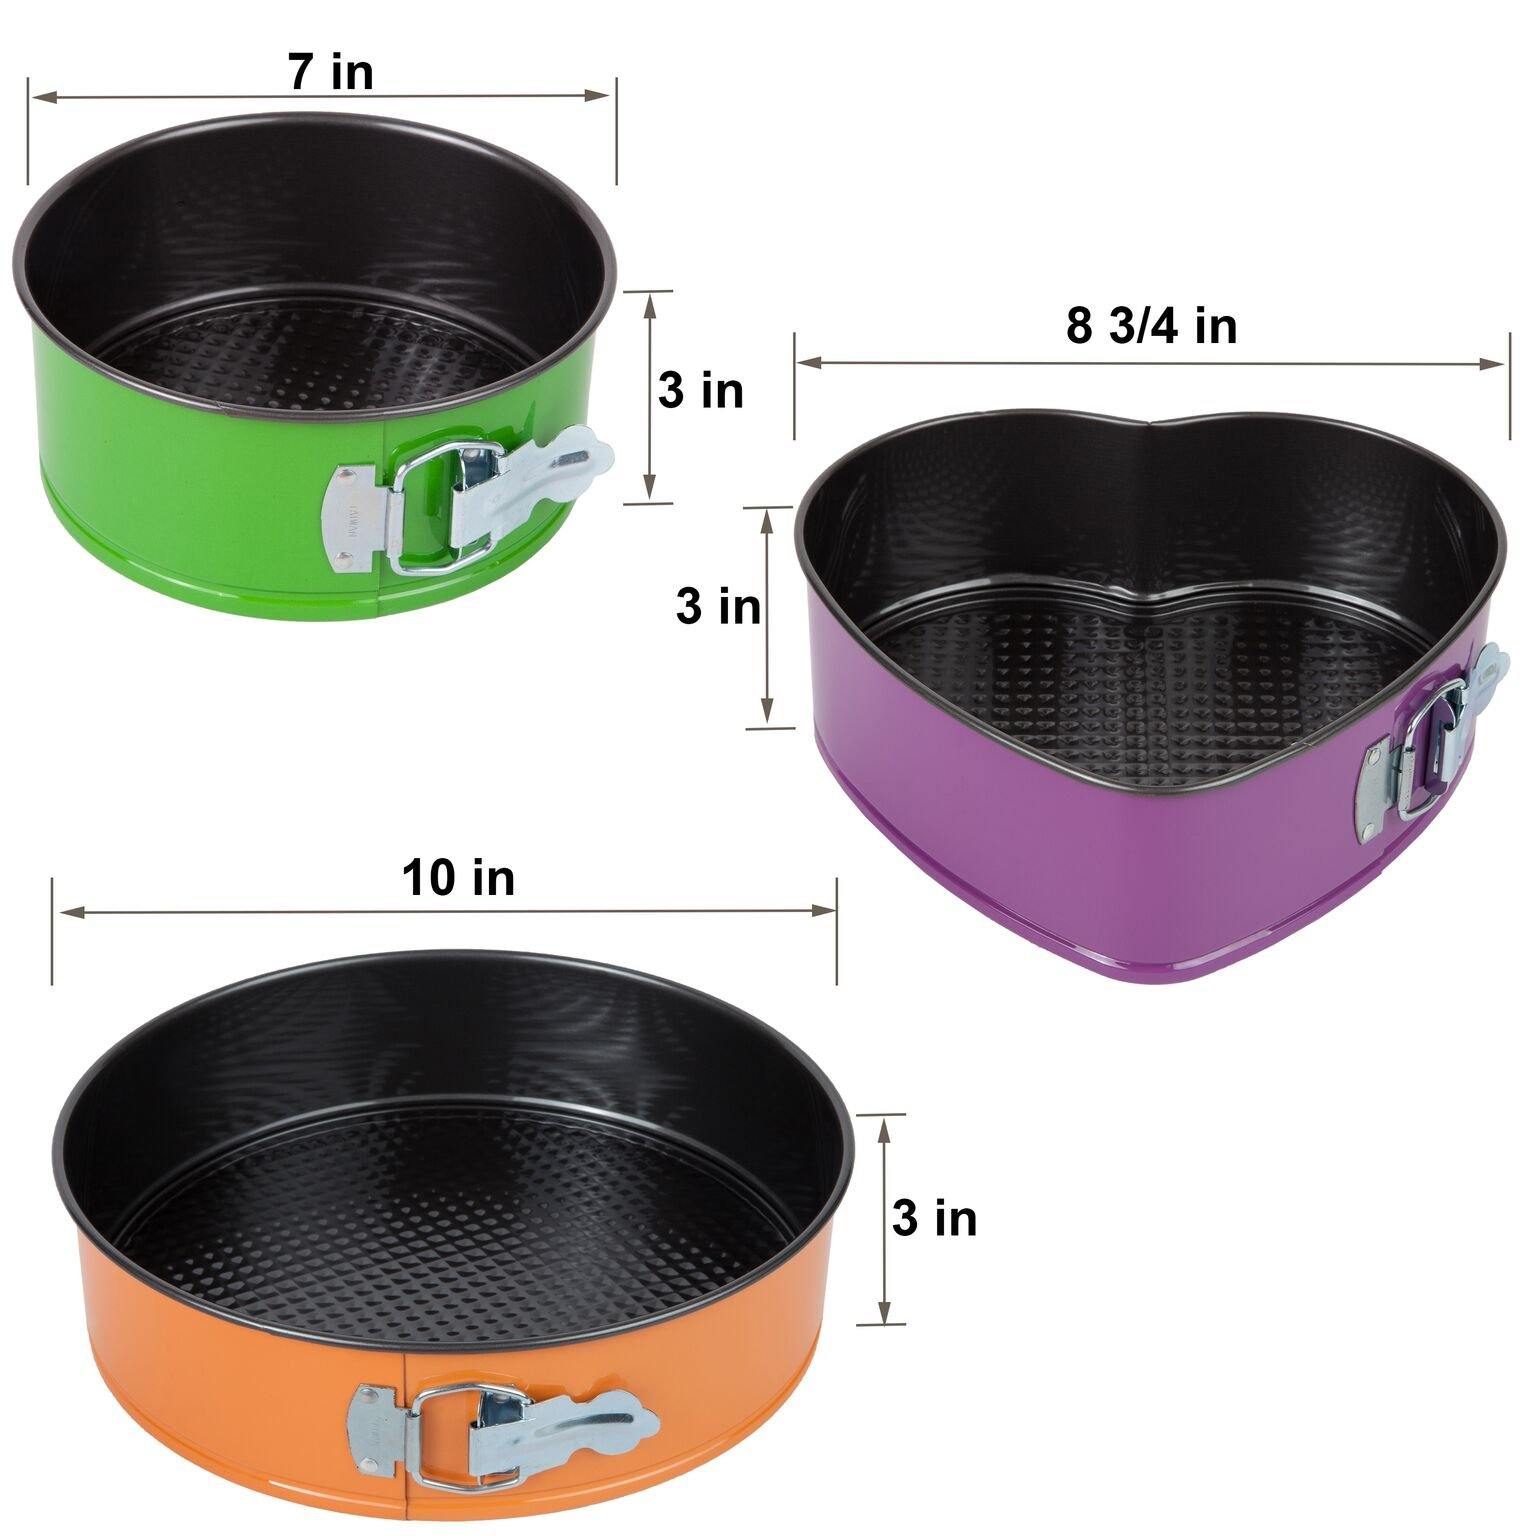 Trenton Gifts Set of 3 Springform Pans with 2 Round and 1 Heart Shaped by TRENTON (Image #6)